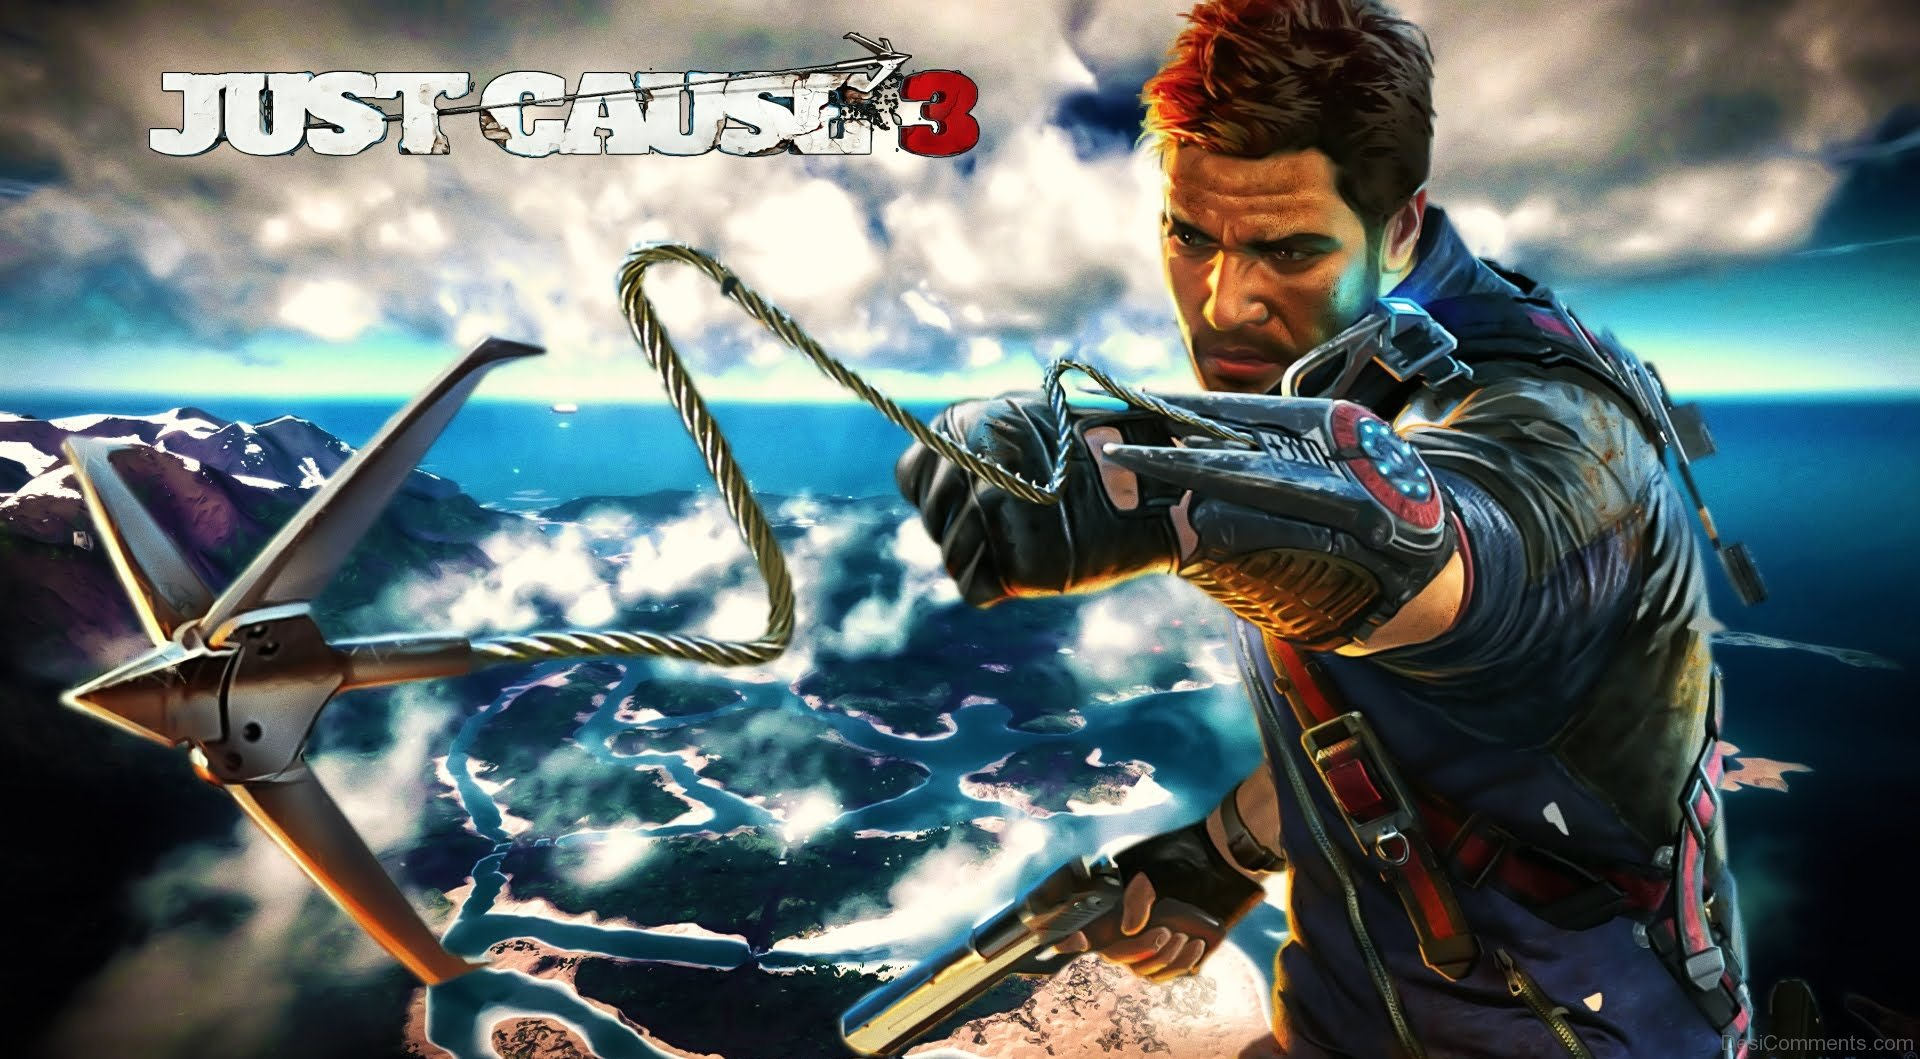 Just Cause 3 Wallpaper: Just Cause 3 Poster